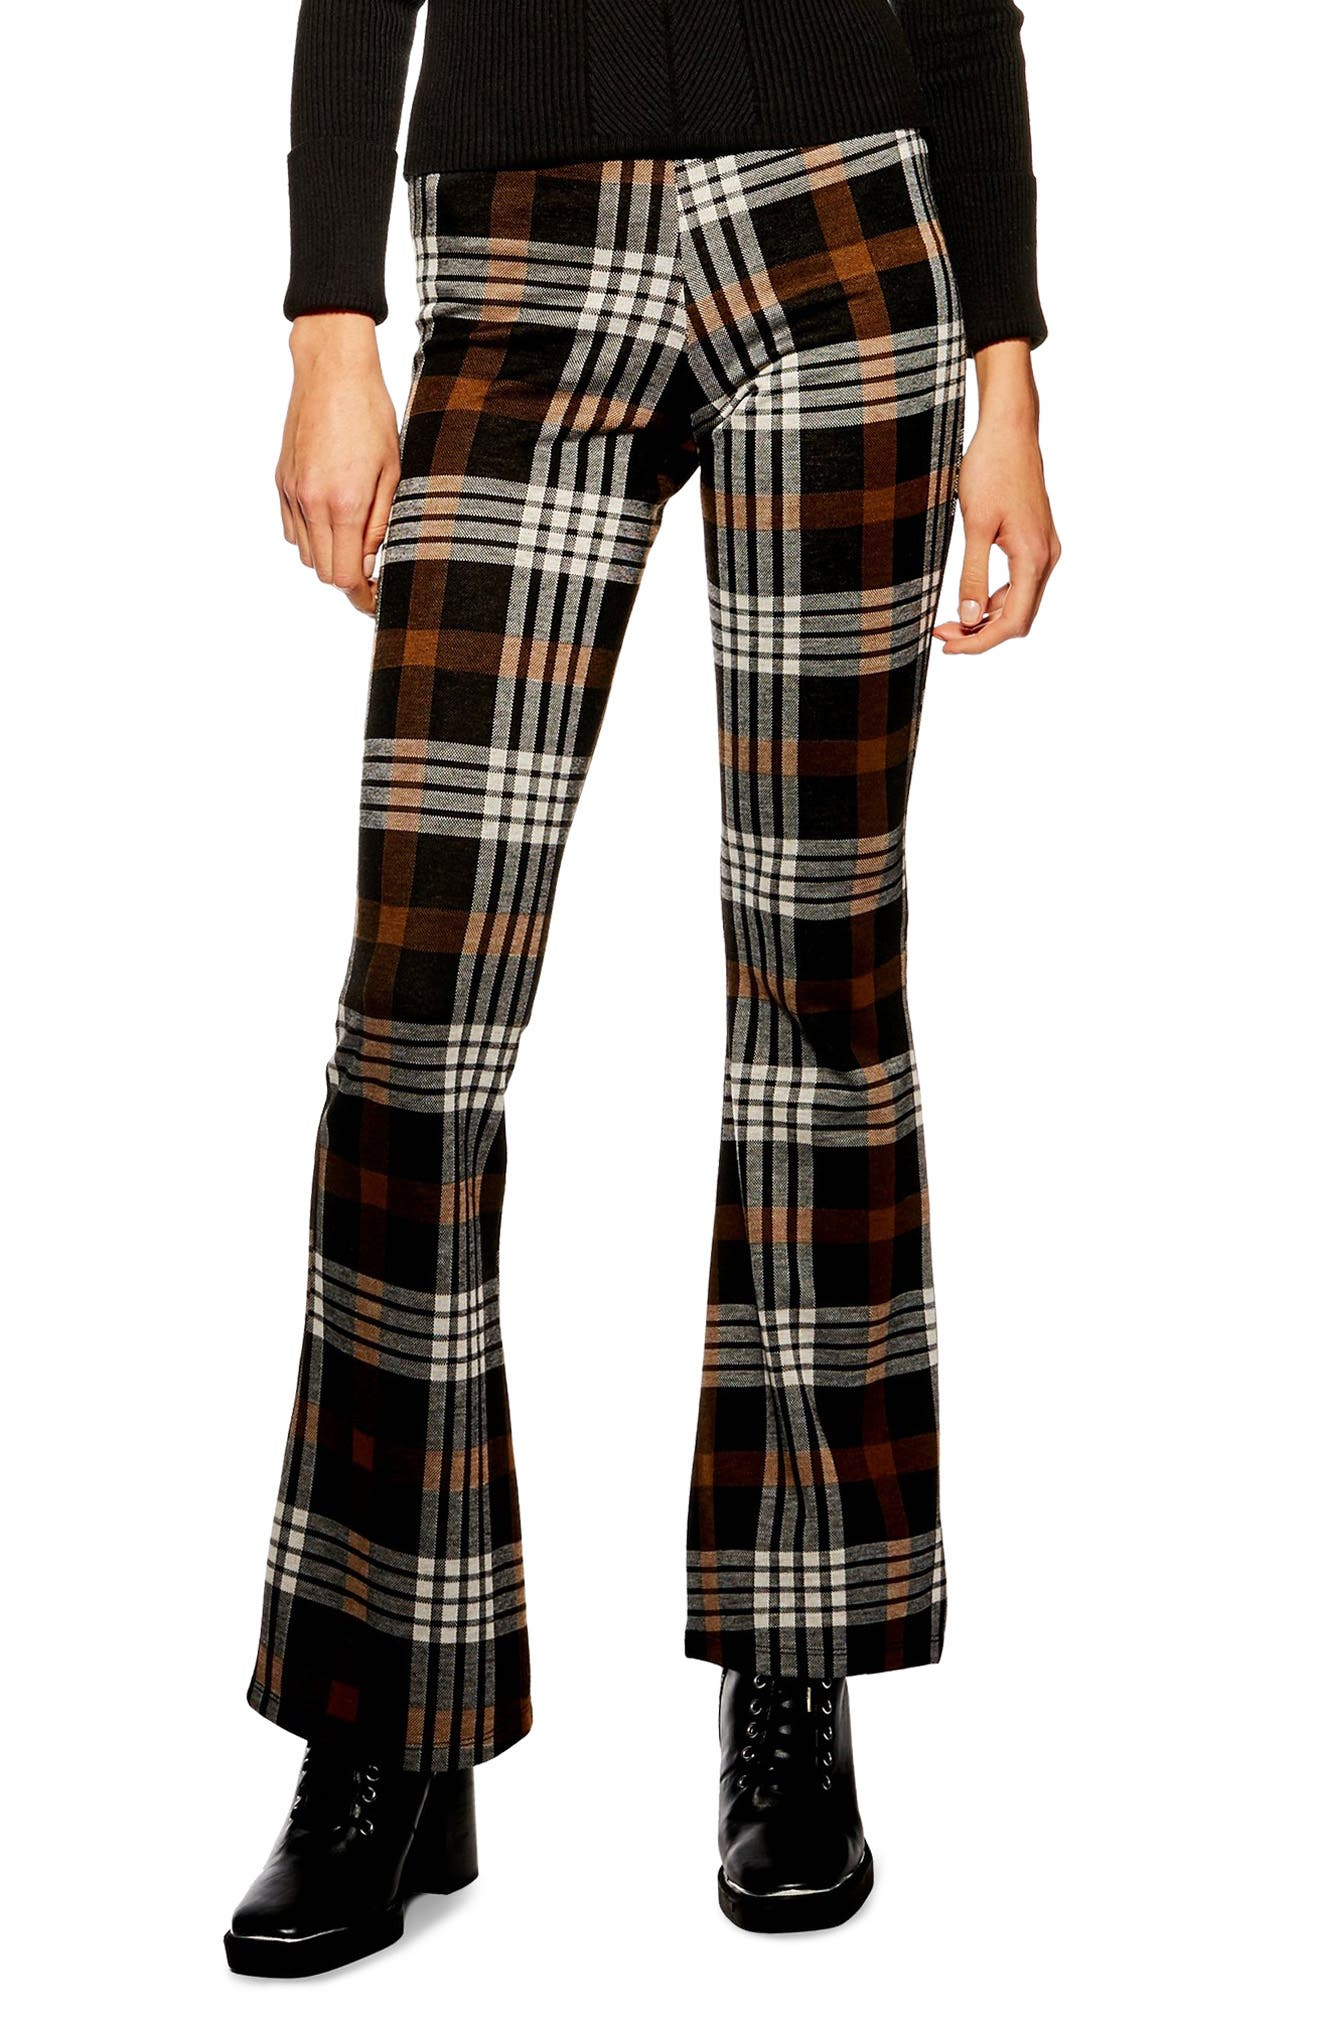 Topshop Plaid Flare Pants